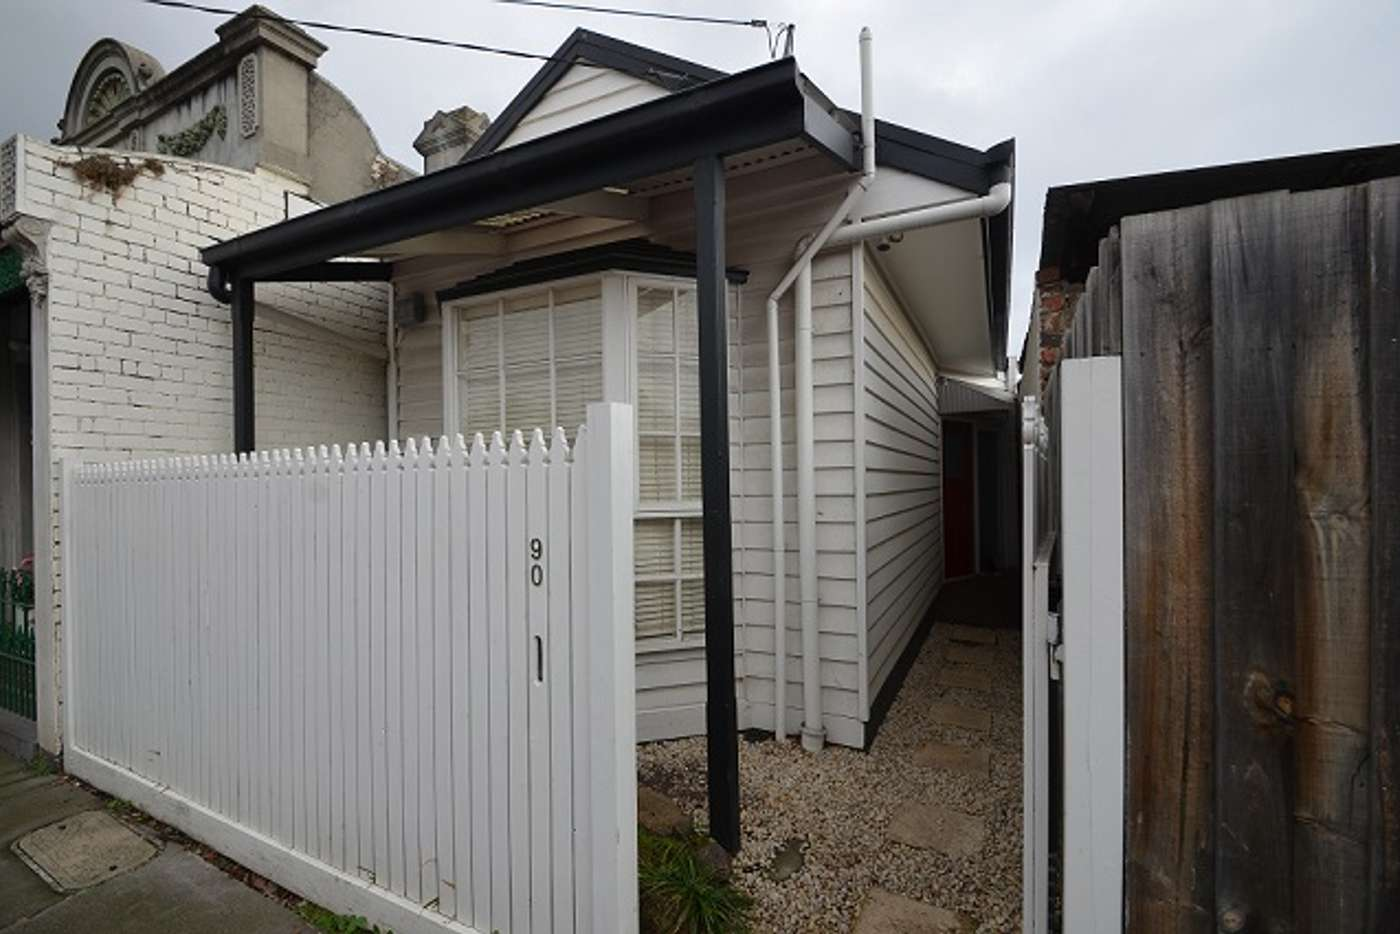 Main view of Homely house listing, 90 Bunting Street, Richmond VIC 3121